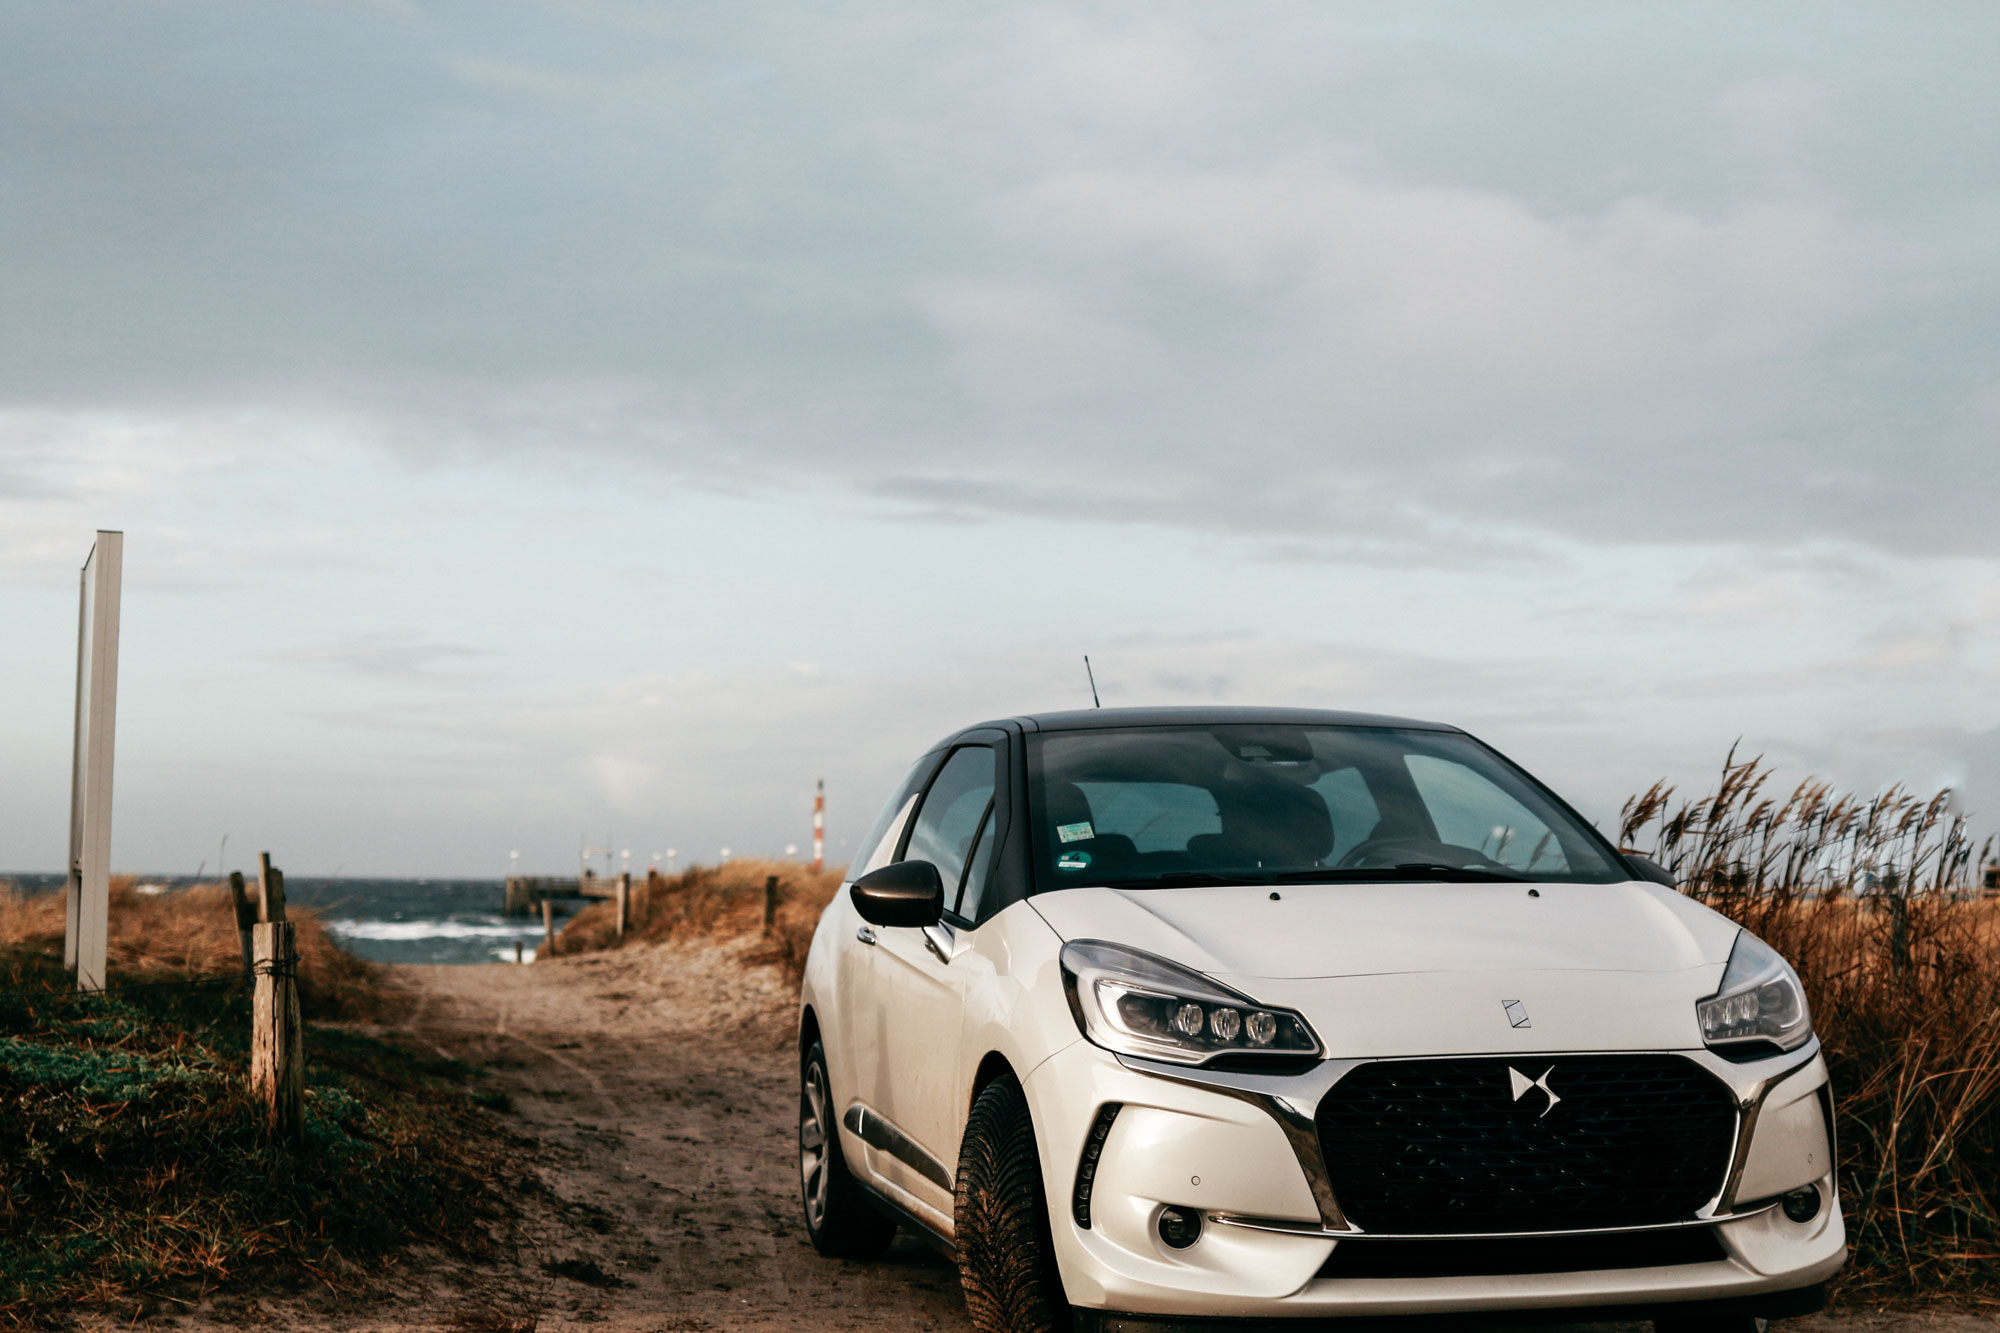 On the road with my DS3 | destination: Ostsee, Gespensterwald